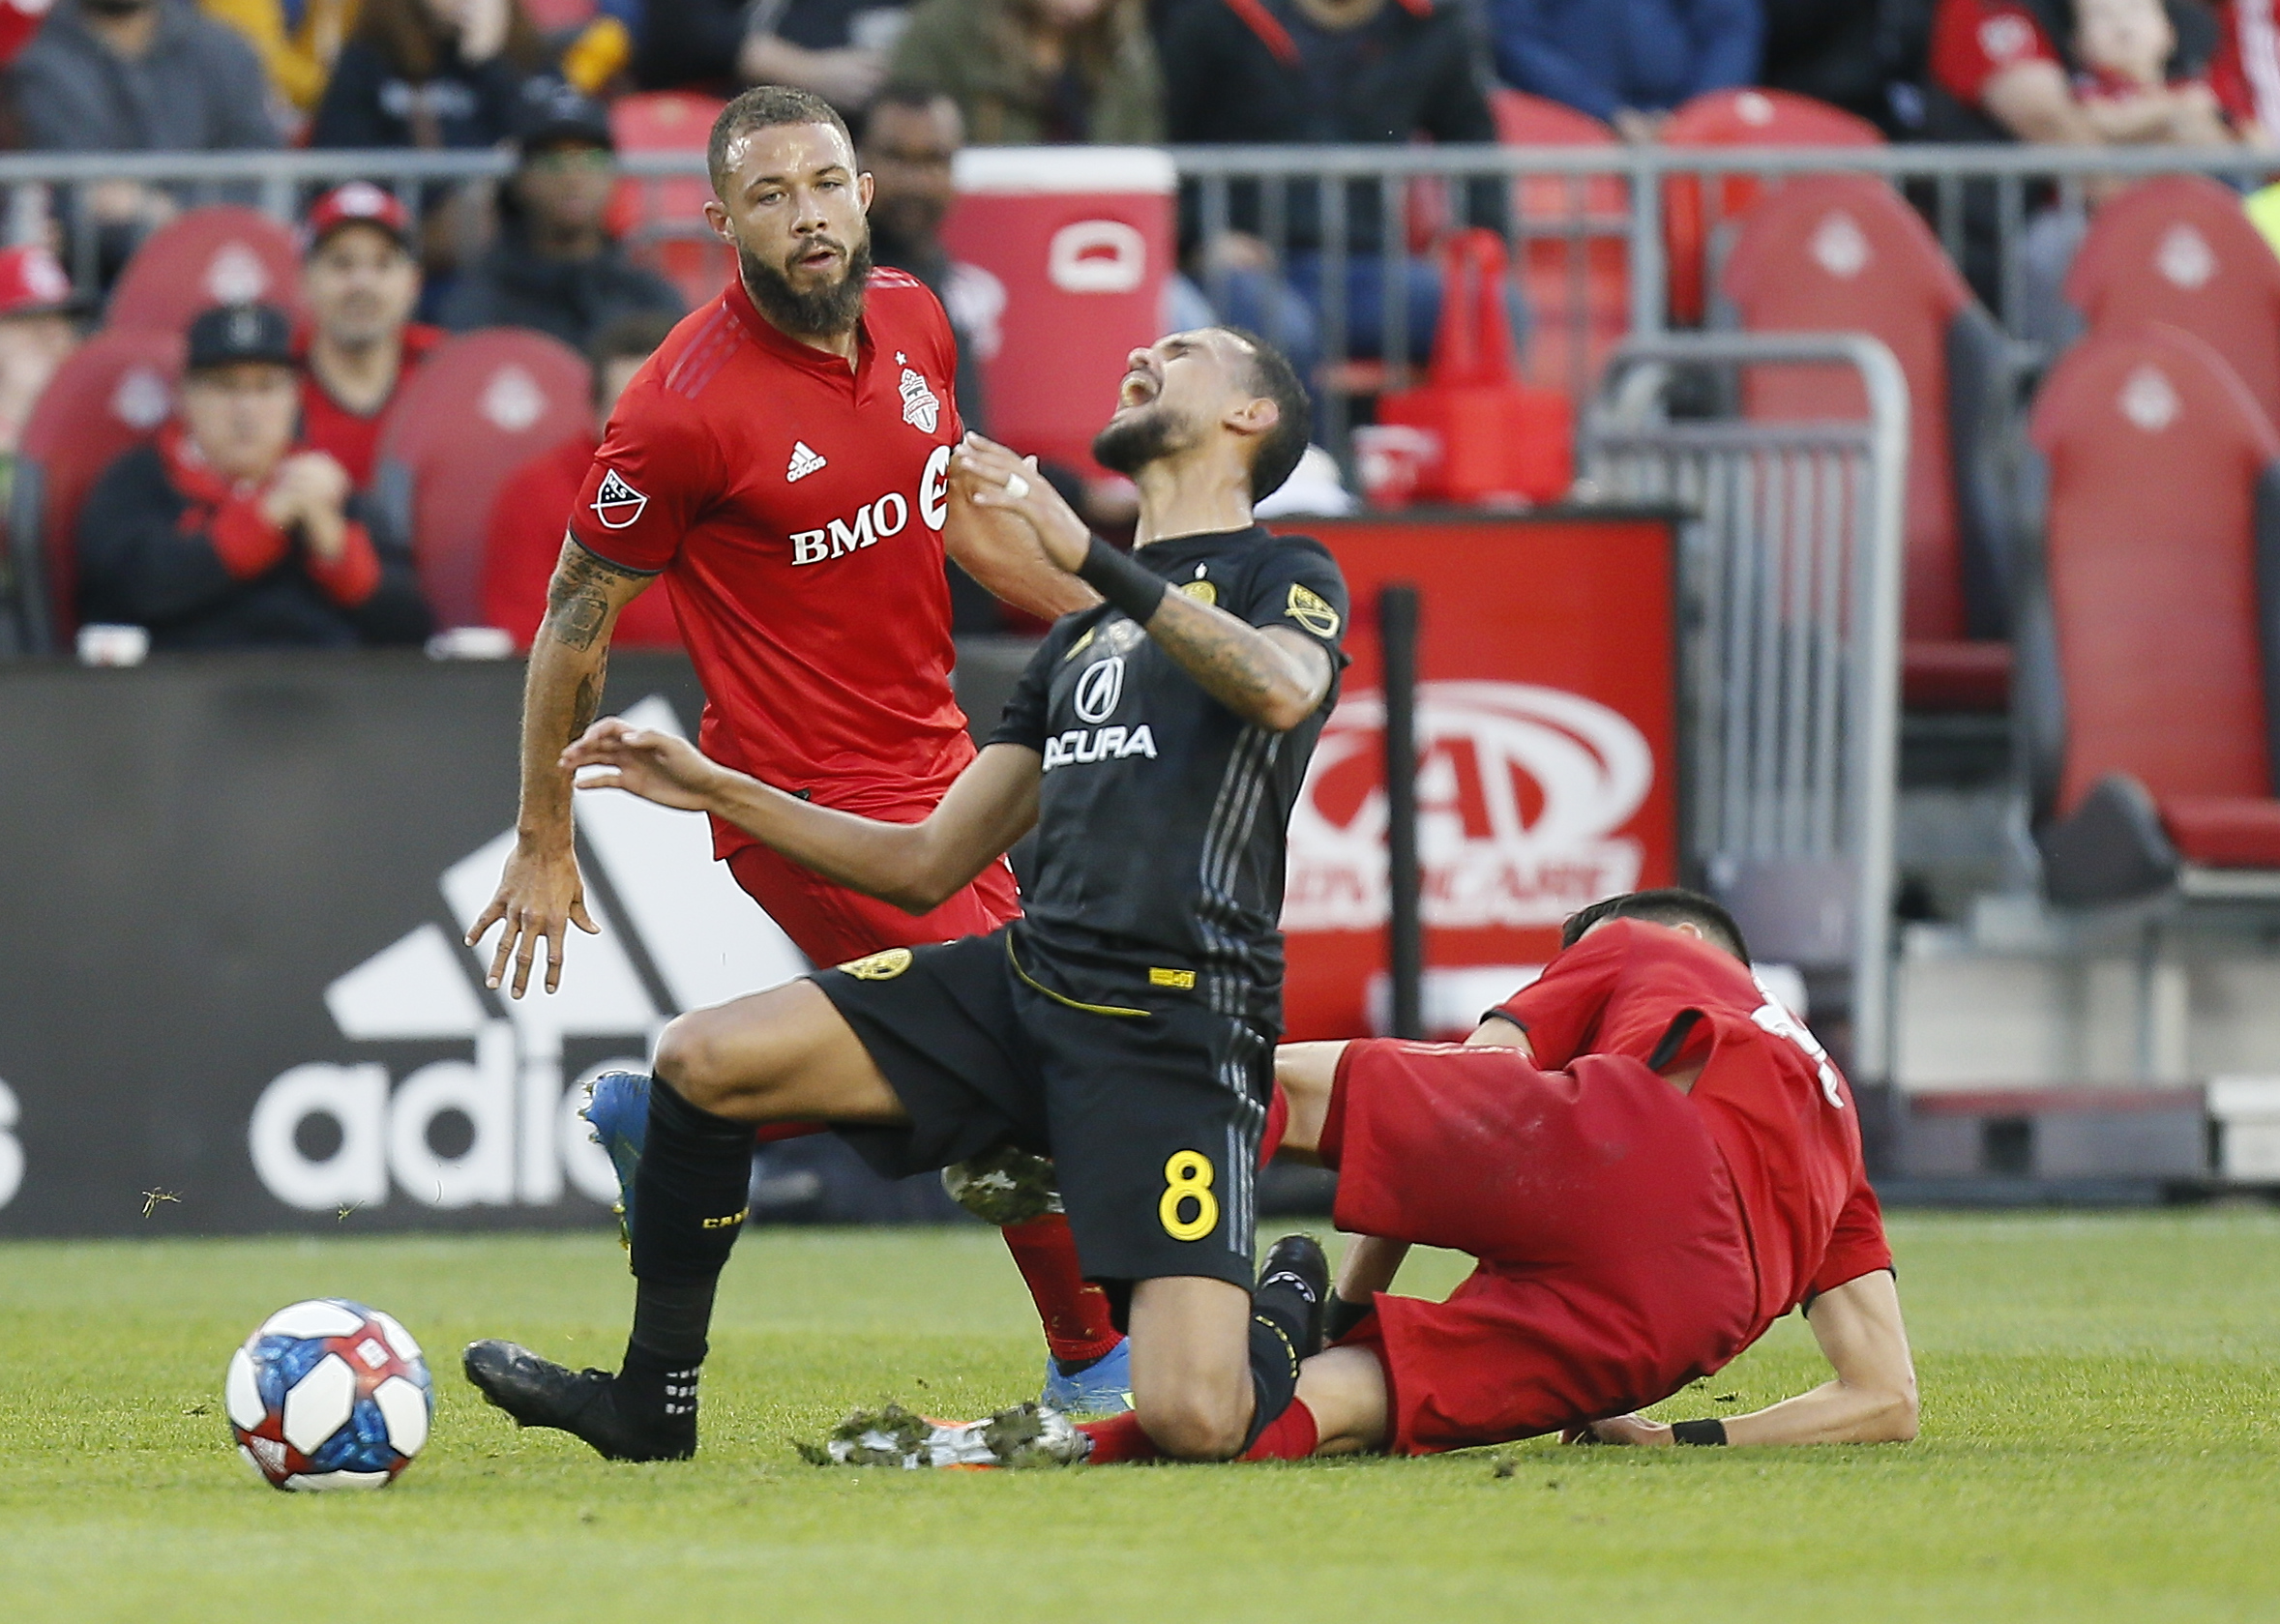 MLS Playoffs preview: First-round predictions for who will advance